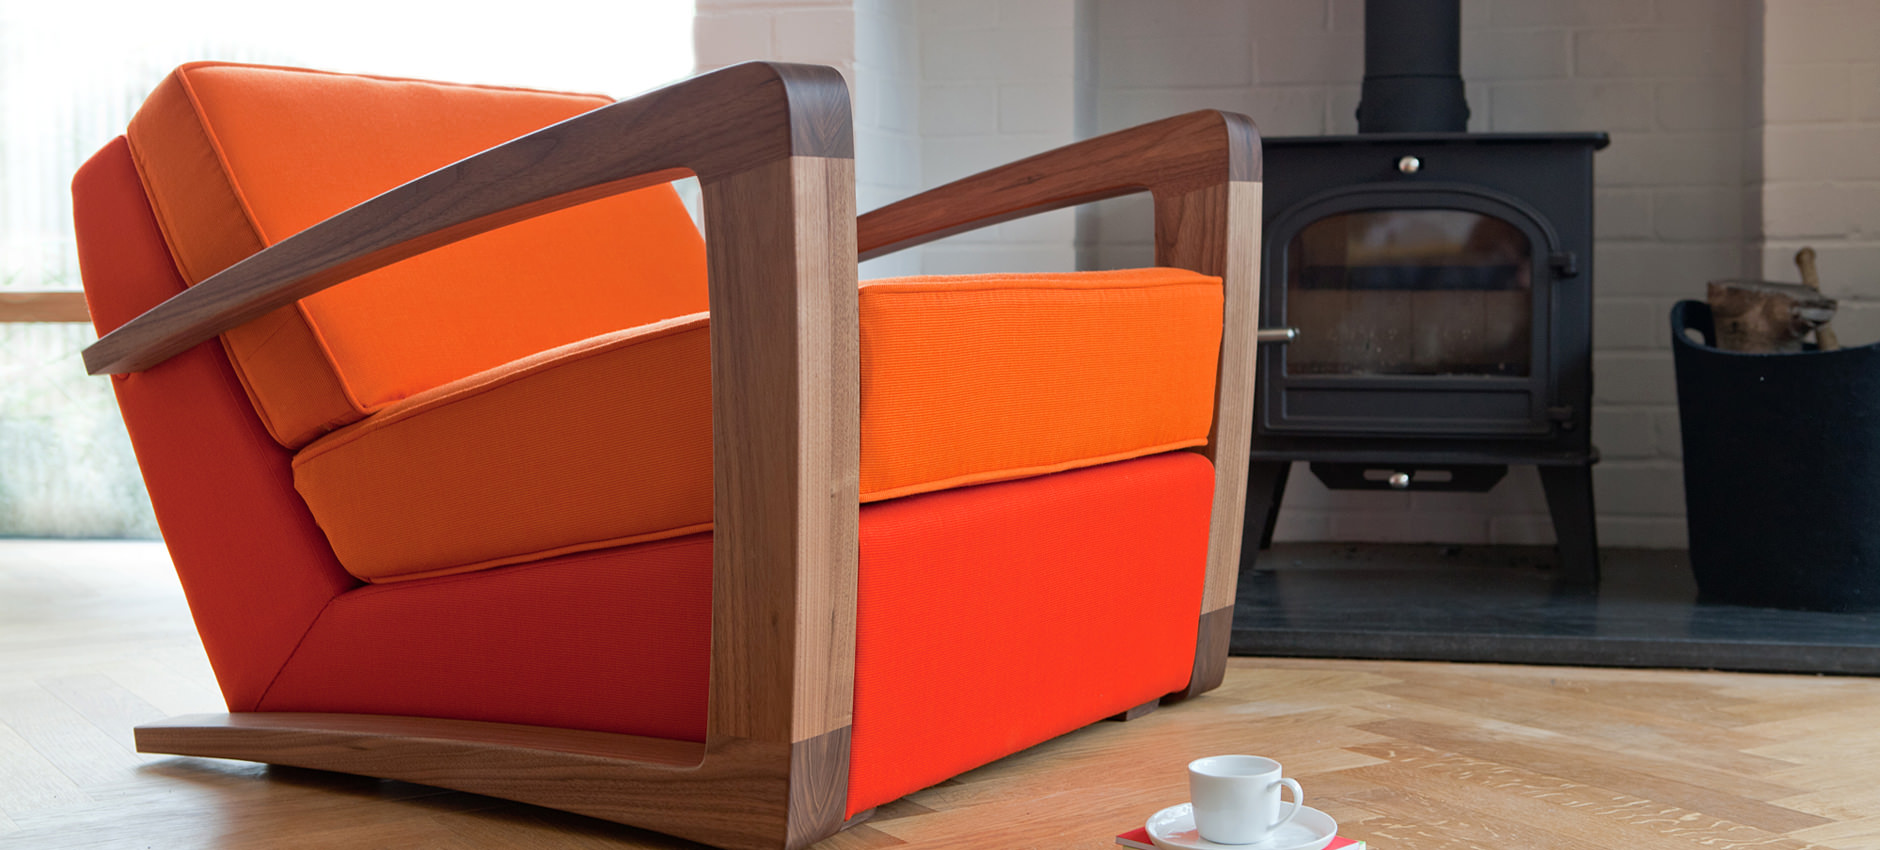 Furniture Pic bark furniture - british, handmade bespoke furniture